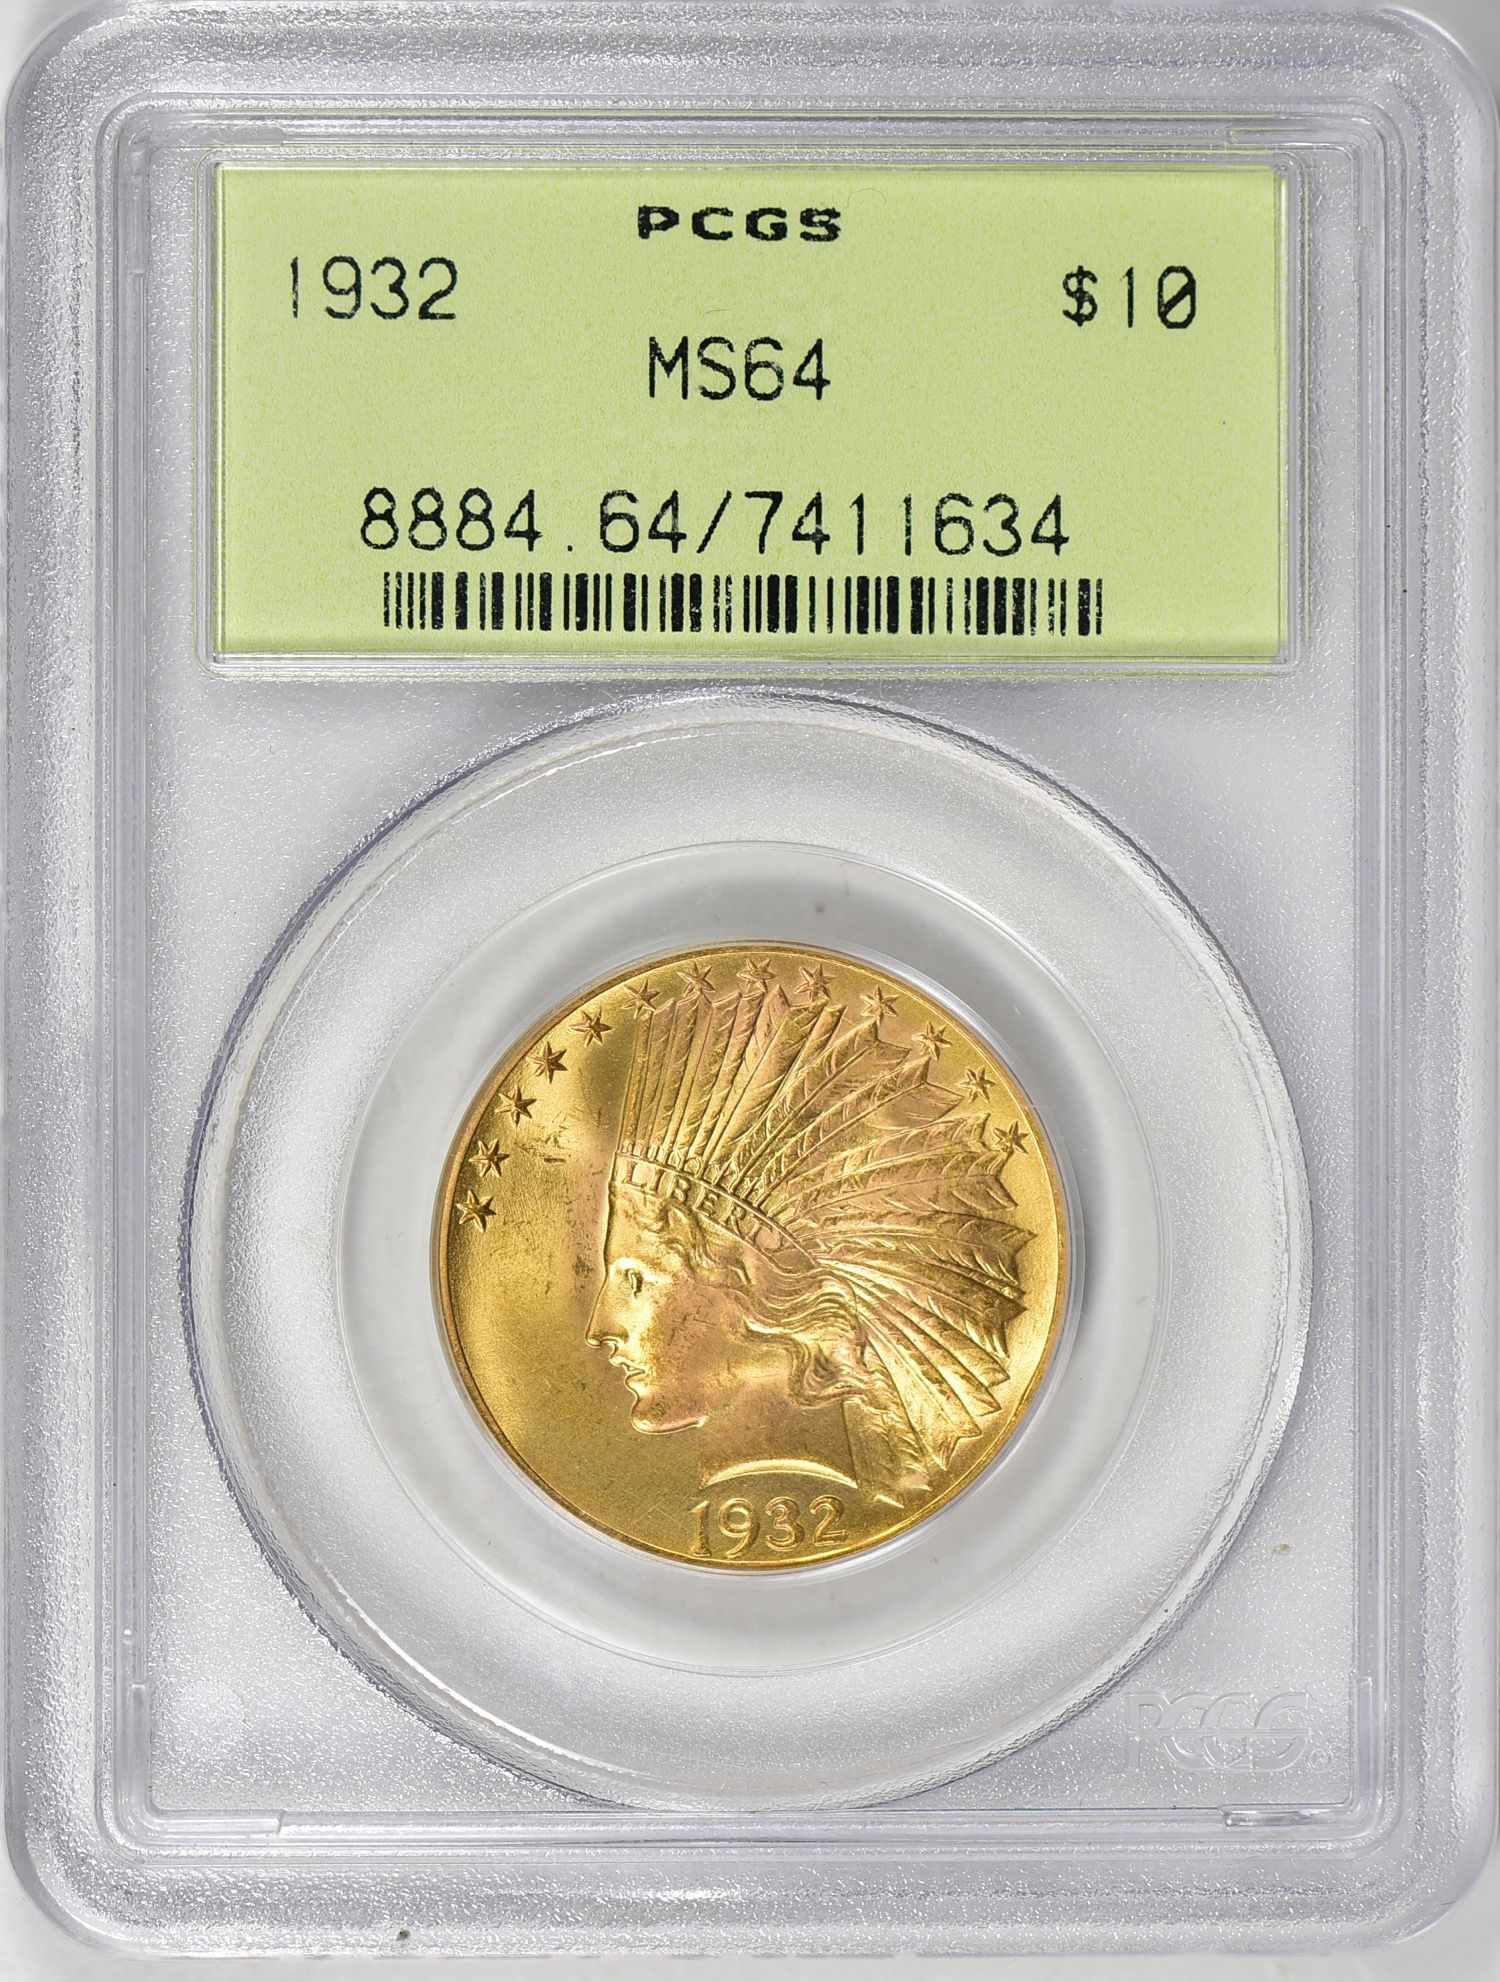 1932 Indian Gold Eagle Pcgs Ms 64 Ogh Goldeagles Indiangoldeagles Pcgs Eagle Goldeagle Tendollars Ten Cappedbustrightea Coin Auctions Coins Gold Coins